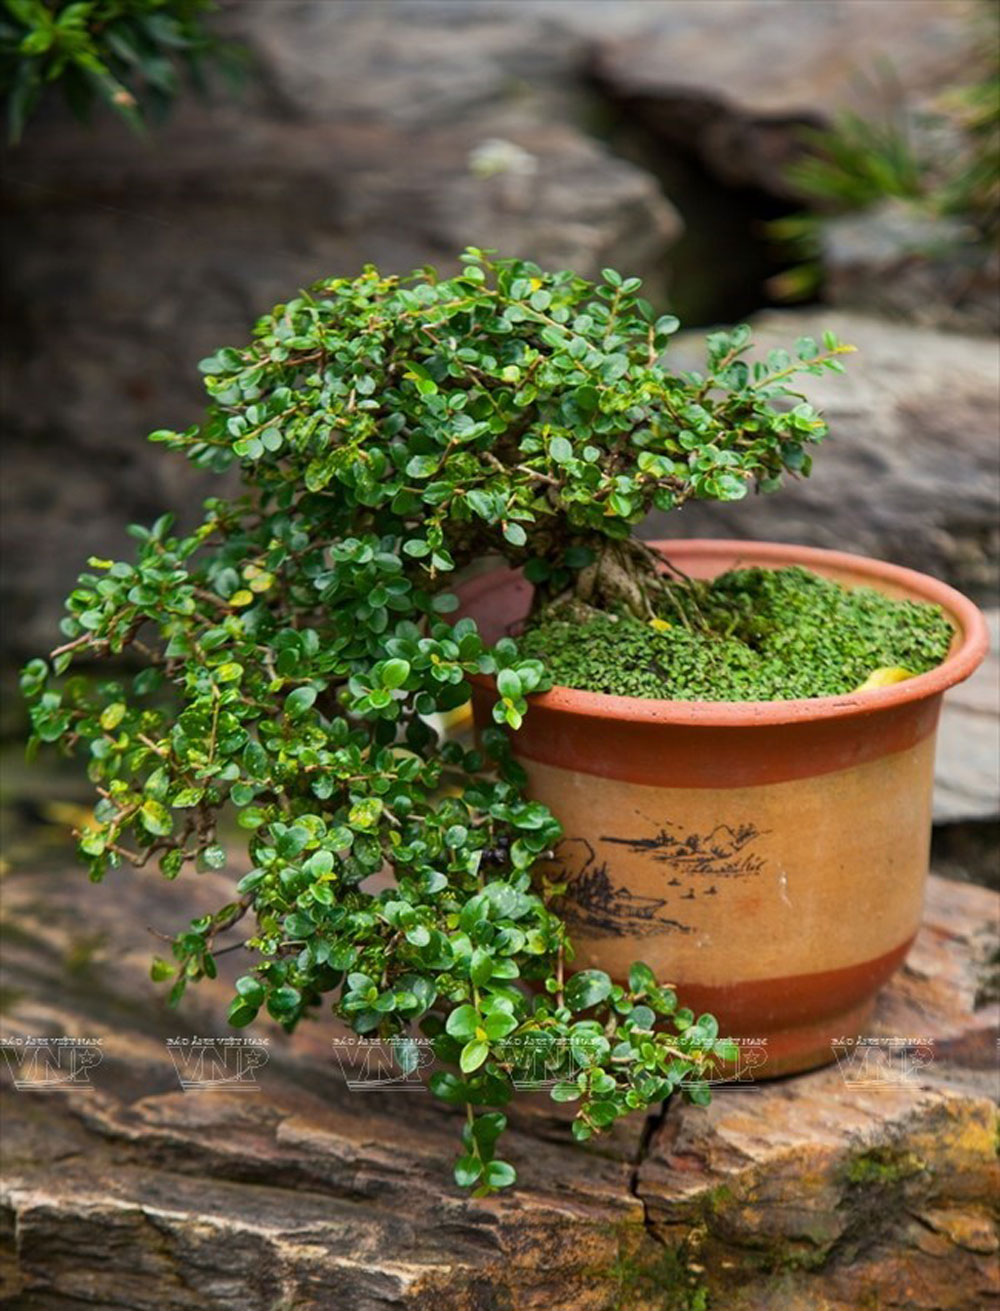 Bonsai, vitality of nature, Bonsai tree planting, natural affinity, good fortune, long life, family ties, traditional Vietnamese landscapes, skillful hands